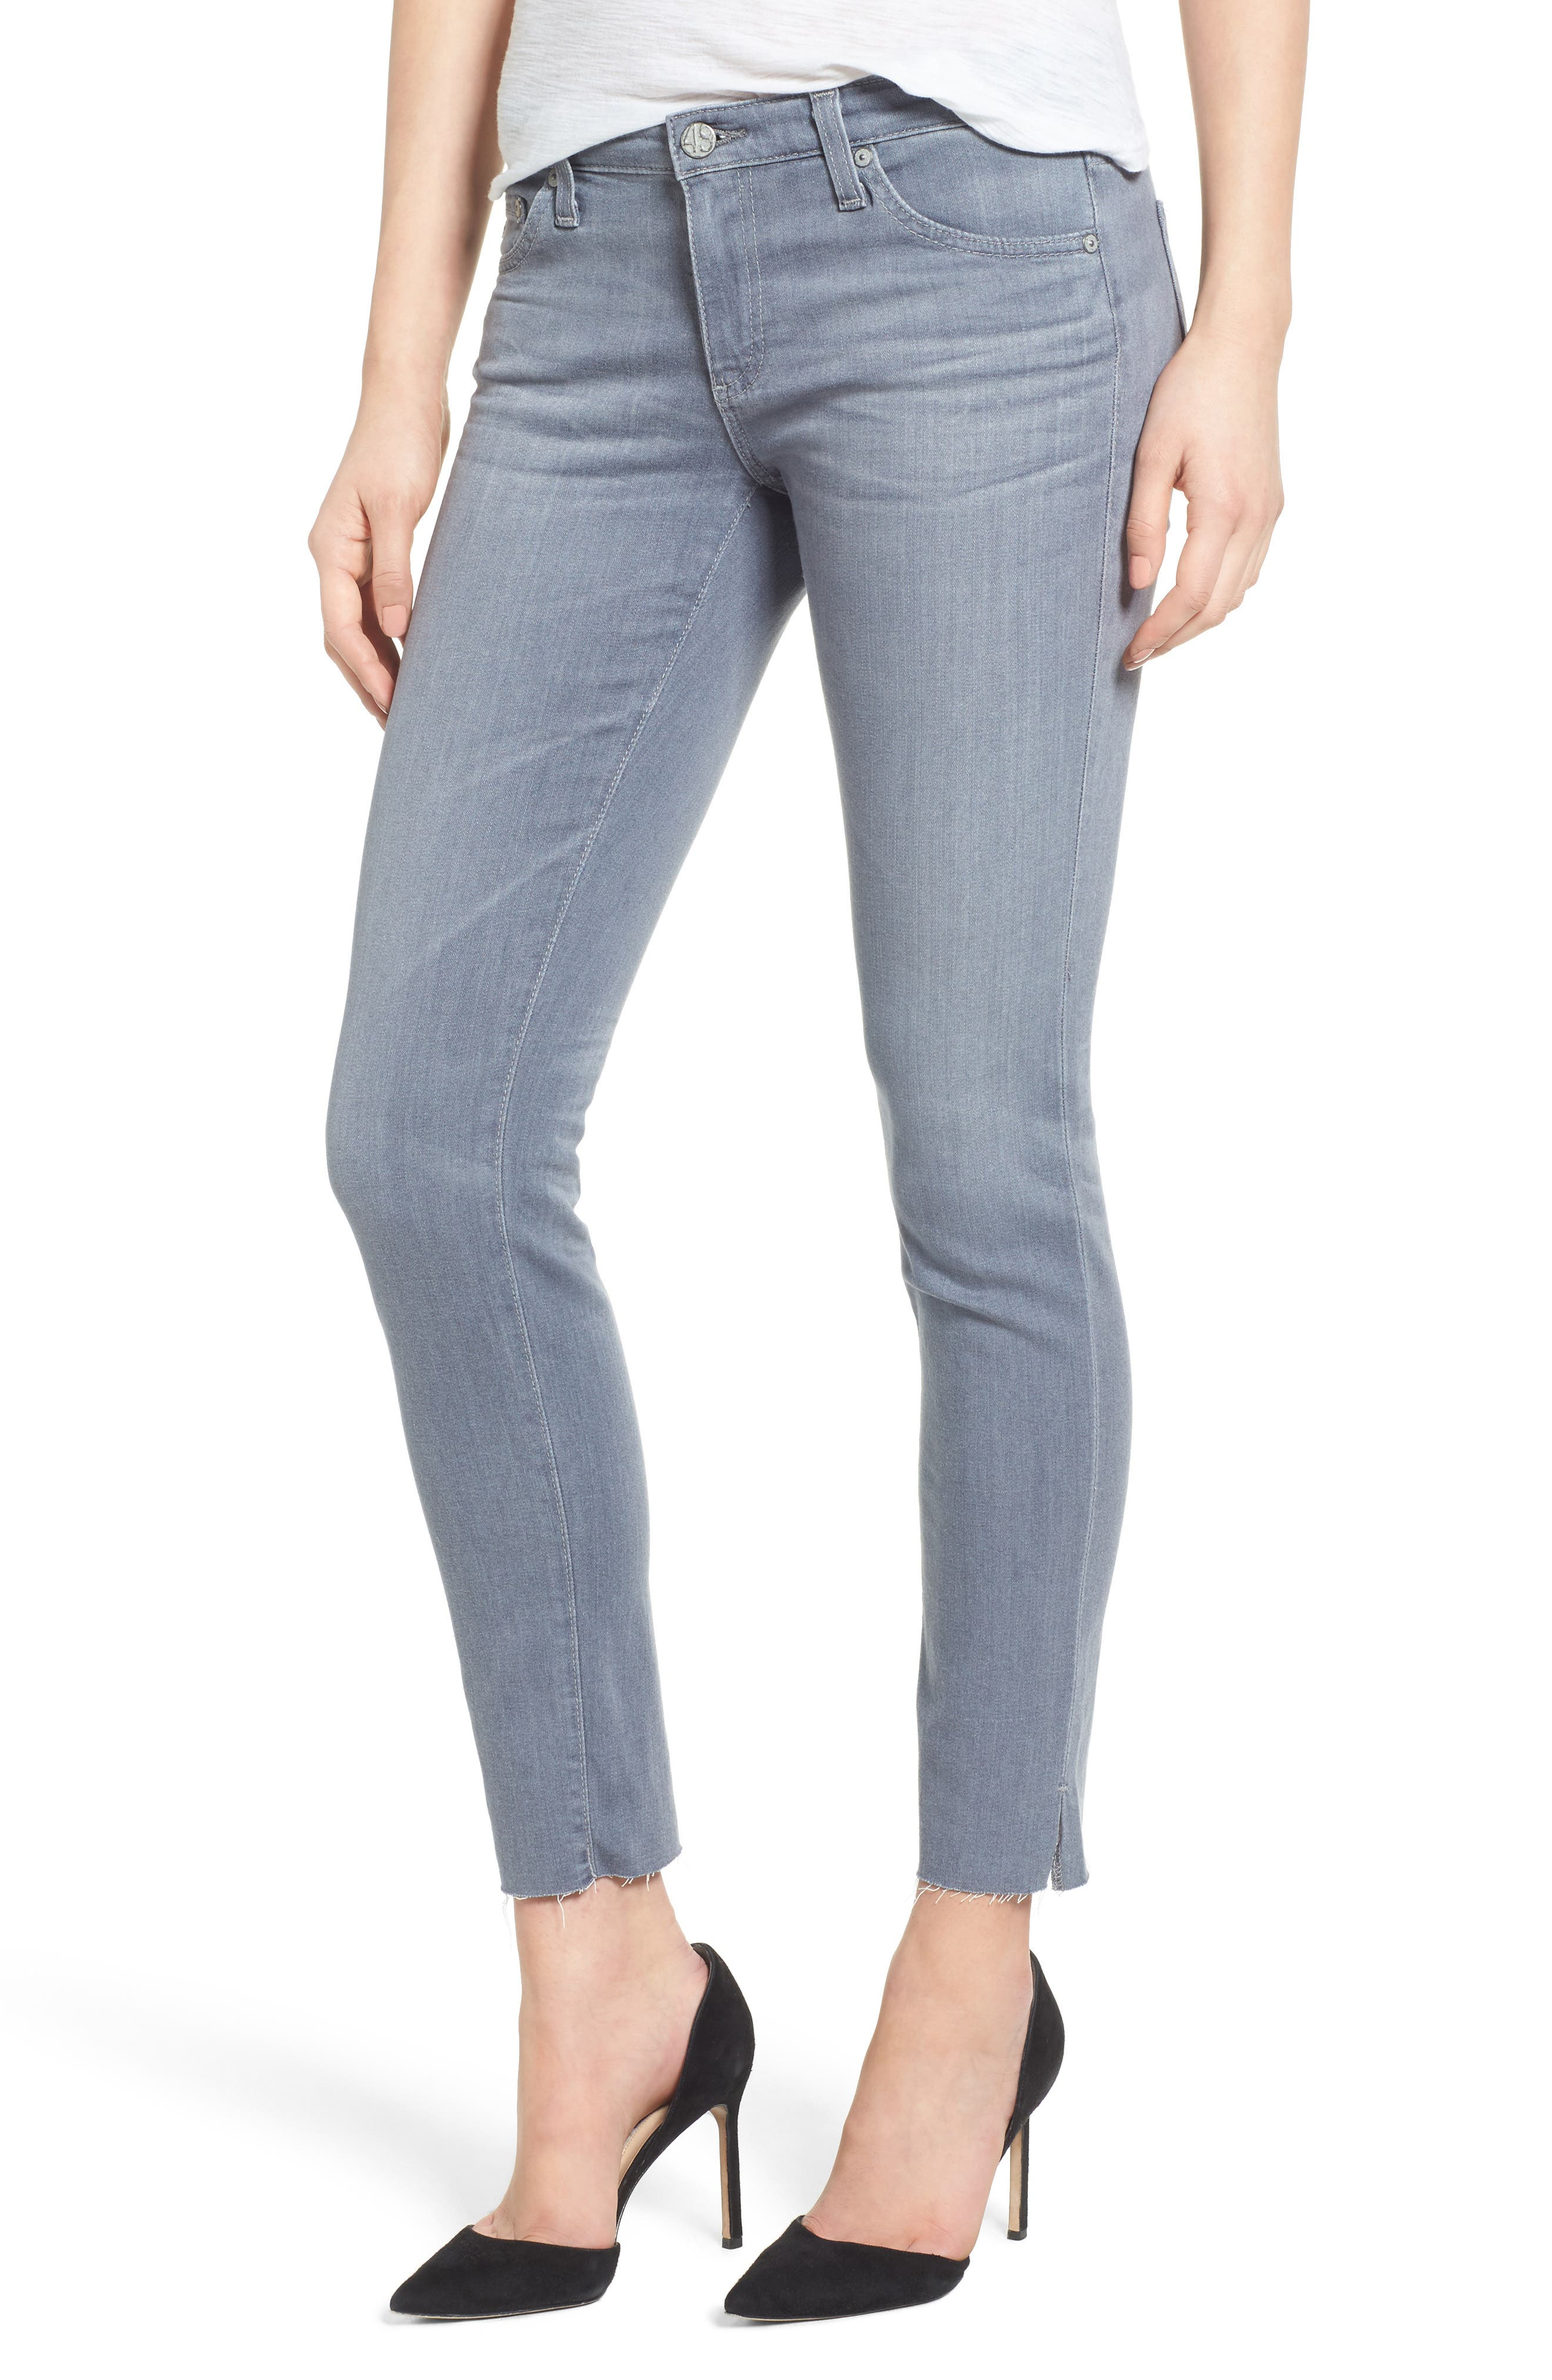 Alternate Image 1 Selected - AG The Legging Ankle Super Skinny Jeans (10 Year Wind Chill)